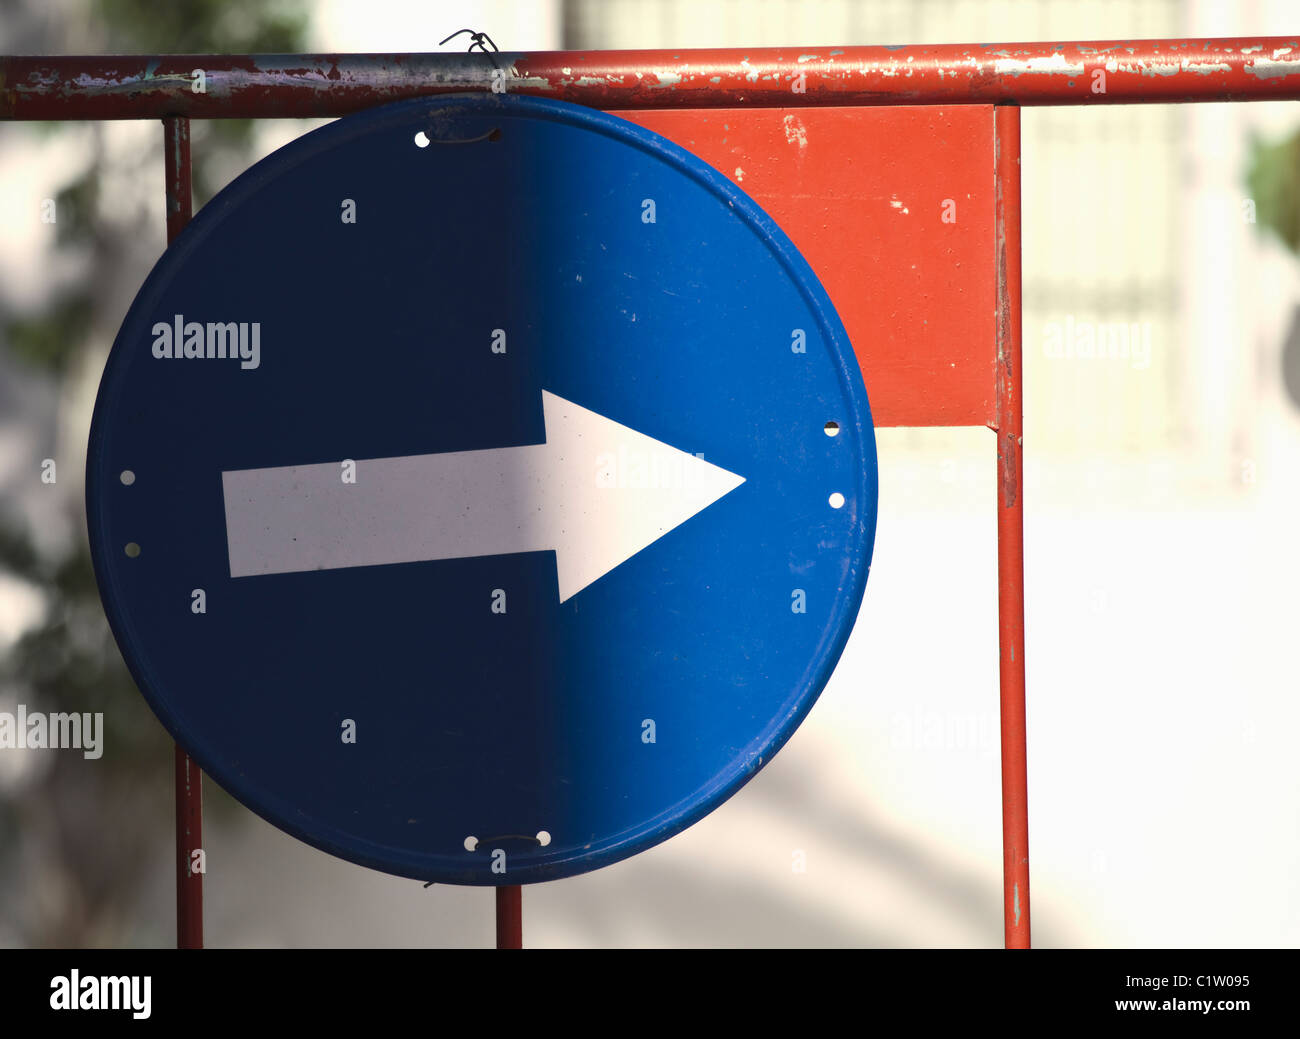 White arrow on blue background directing traffic to right - Stock Image